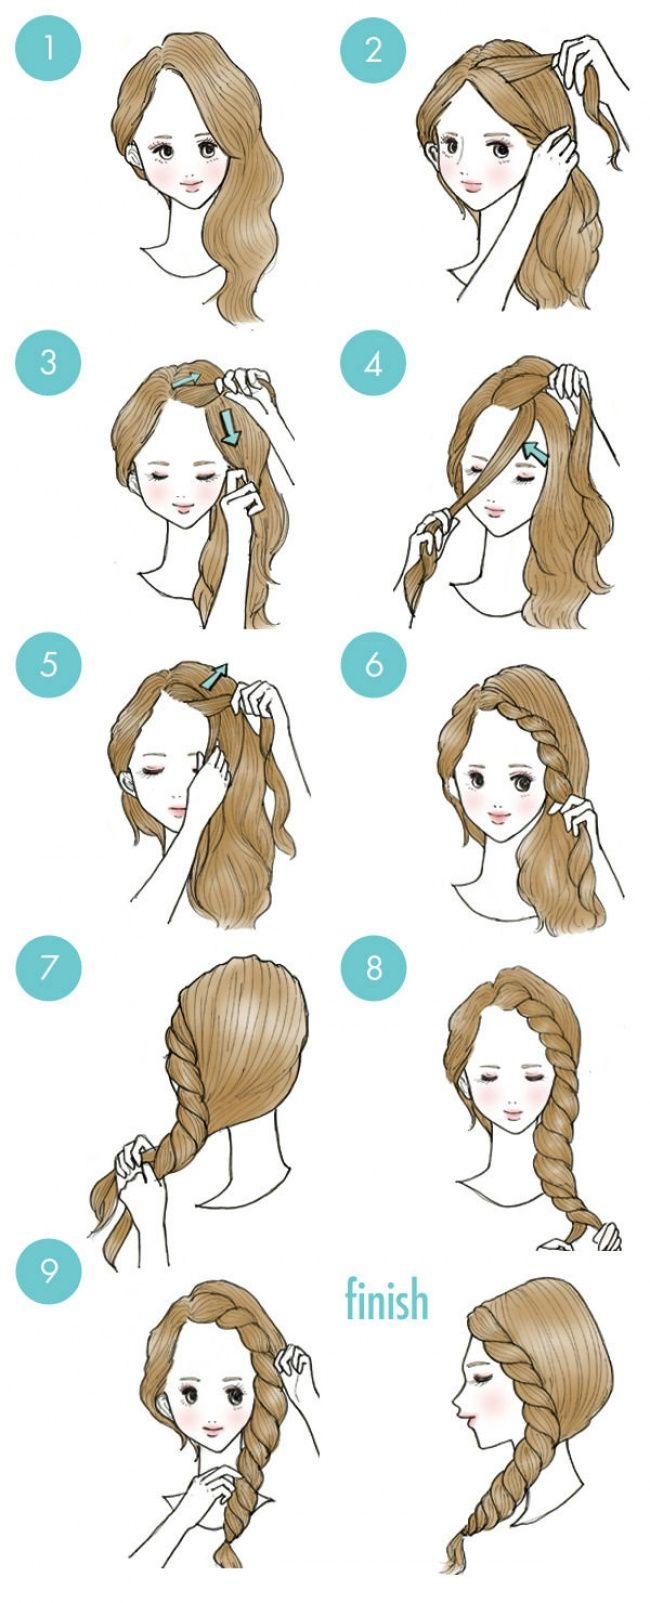 If you're feeling bored with your usual hairstyle but just don't want to go through all the expense and hassle of visiting the stylist, we… (click to see more)